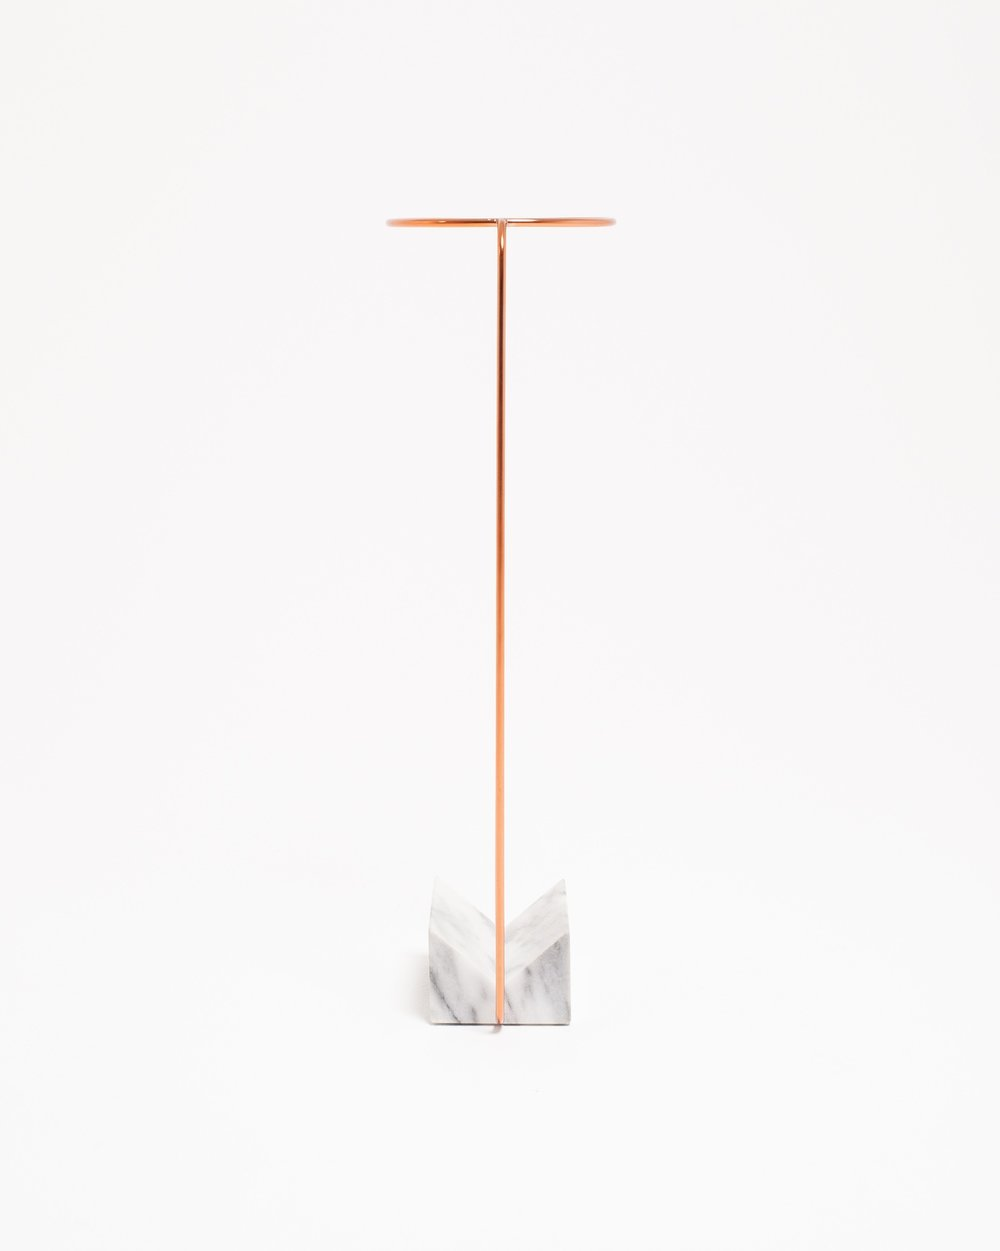 Thom+Fougere+Umbrella+Stand